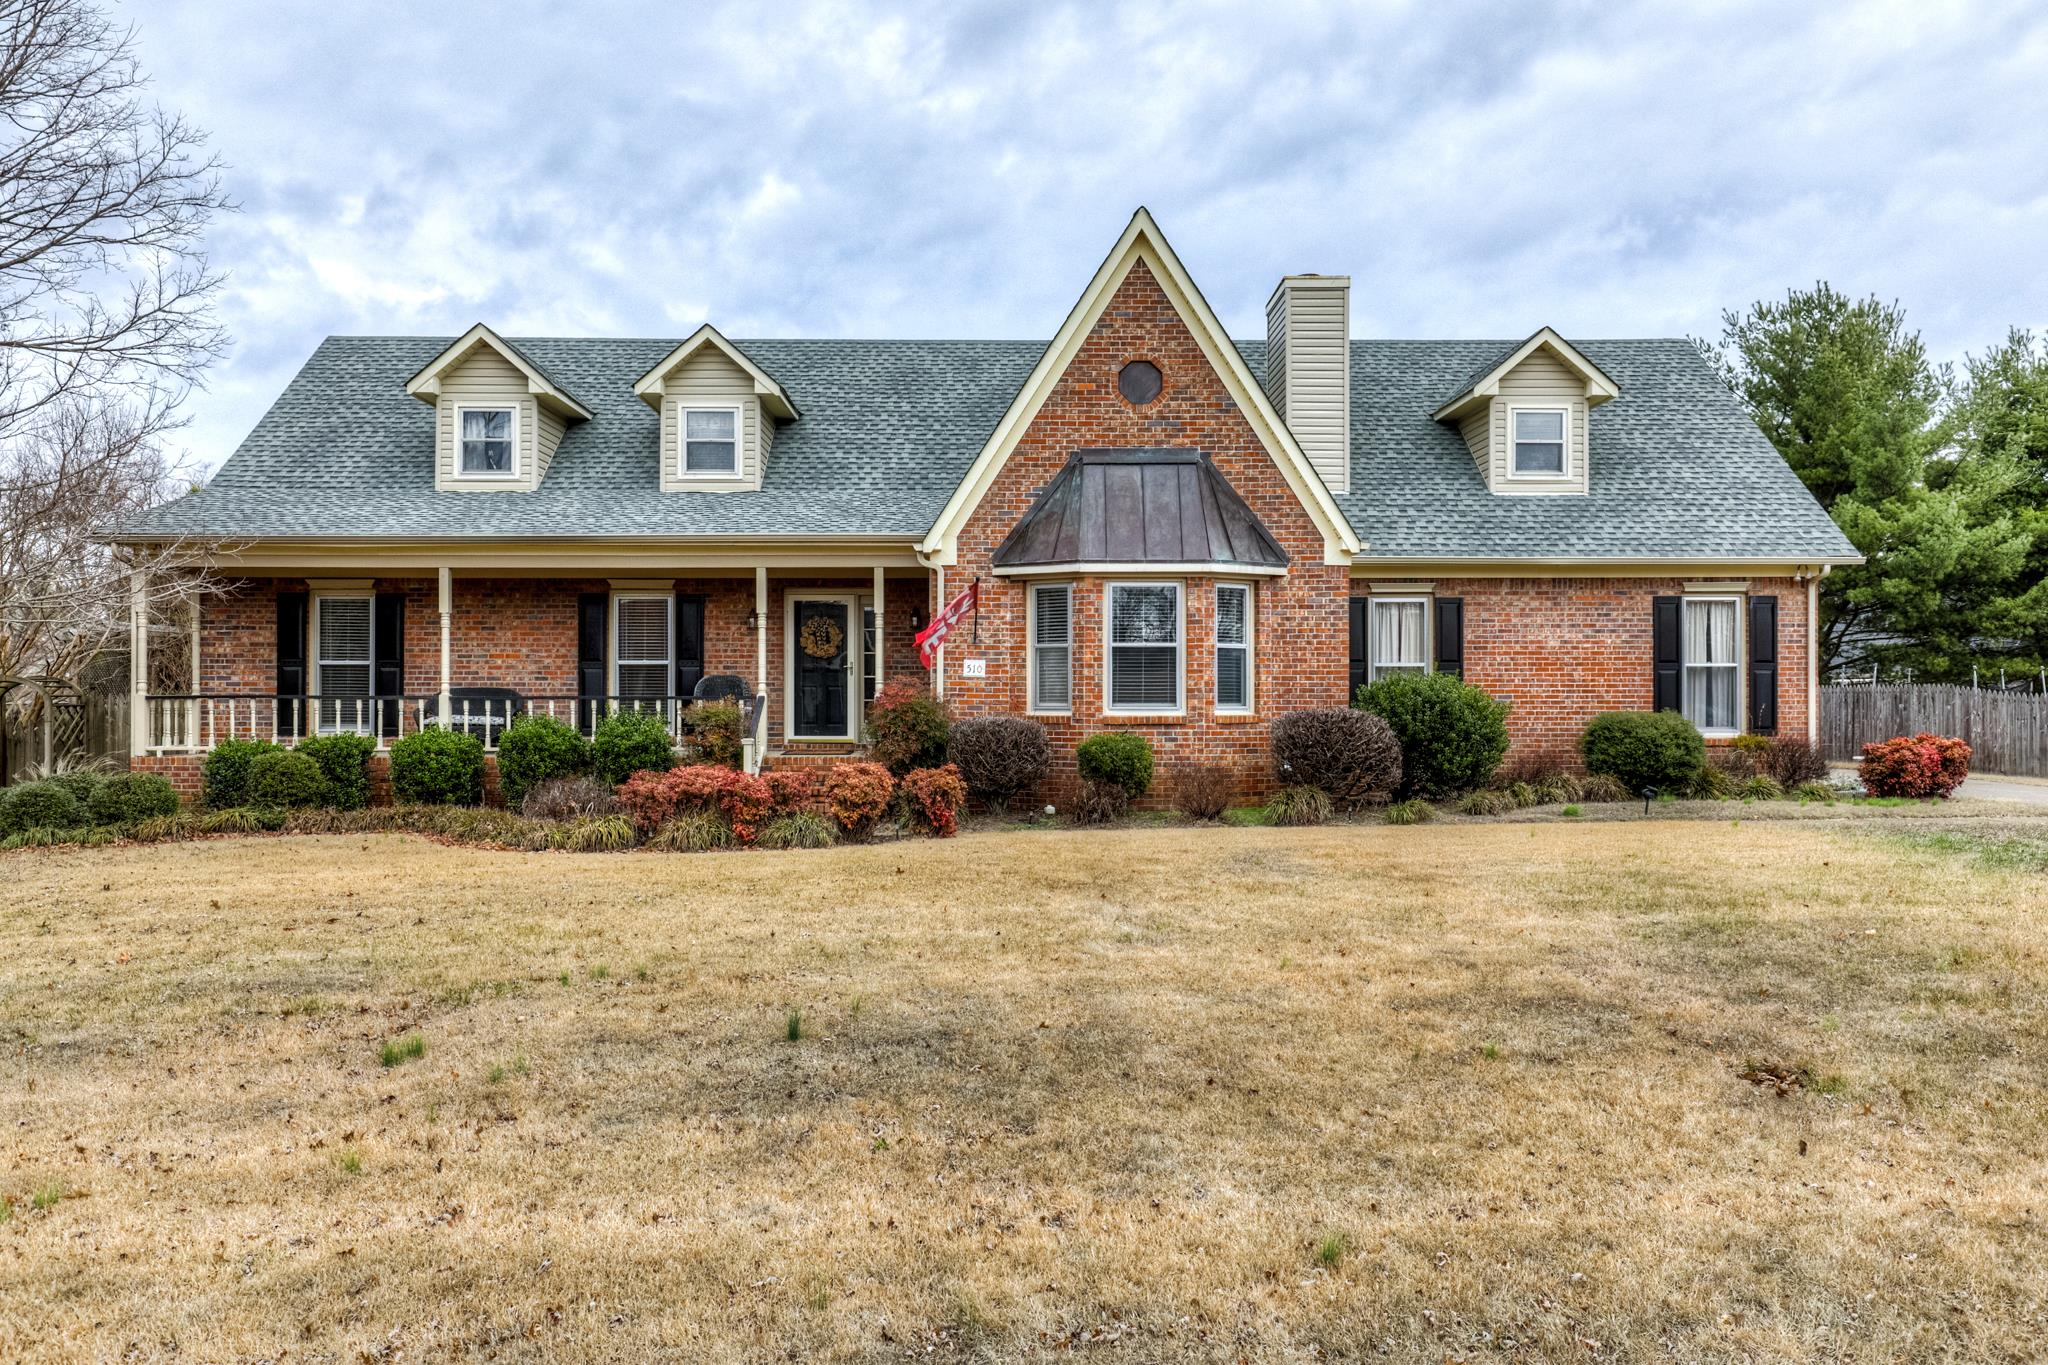 510 Winthorne Ct, Murfreesboro, TN 37129